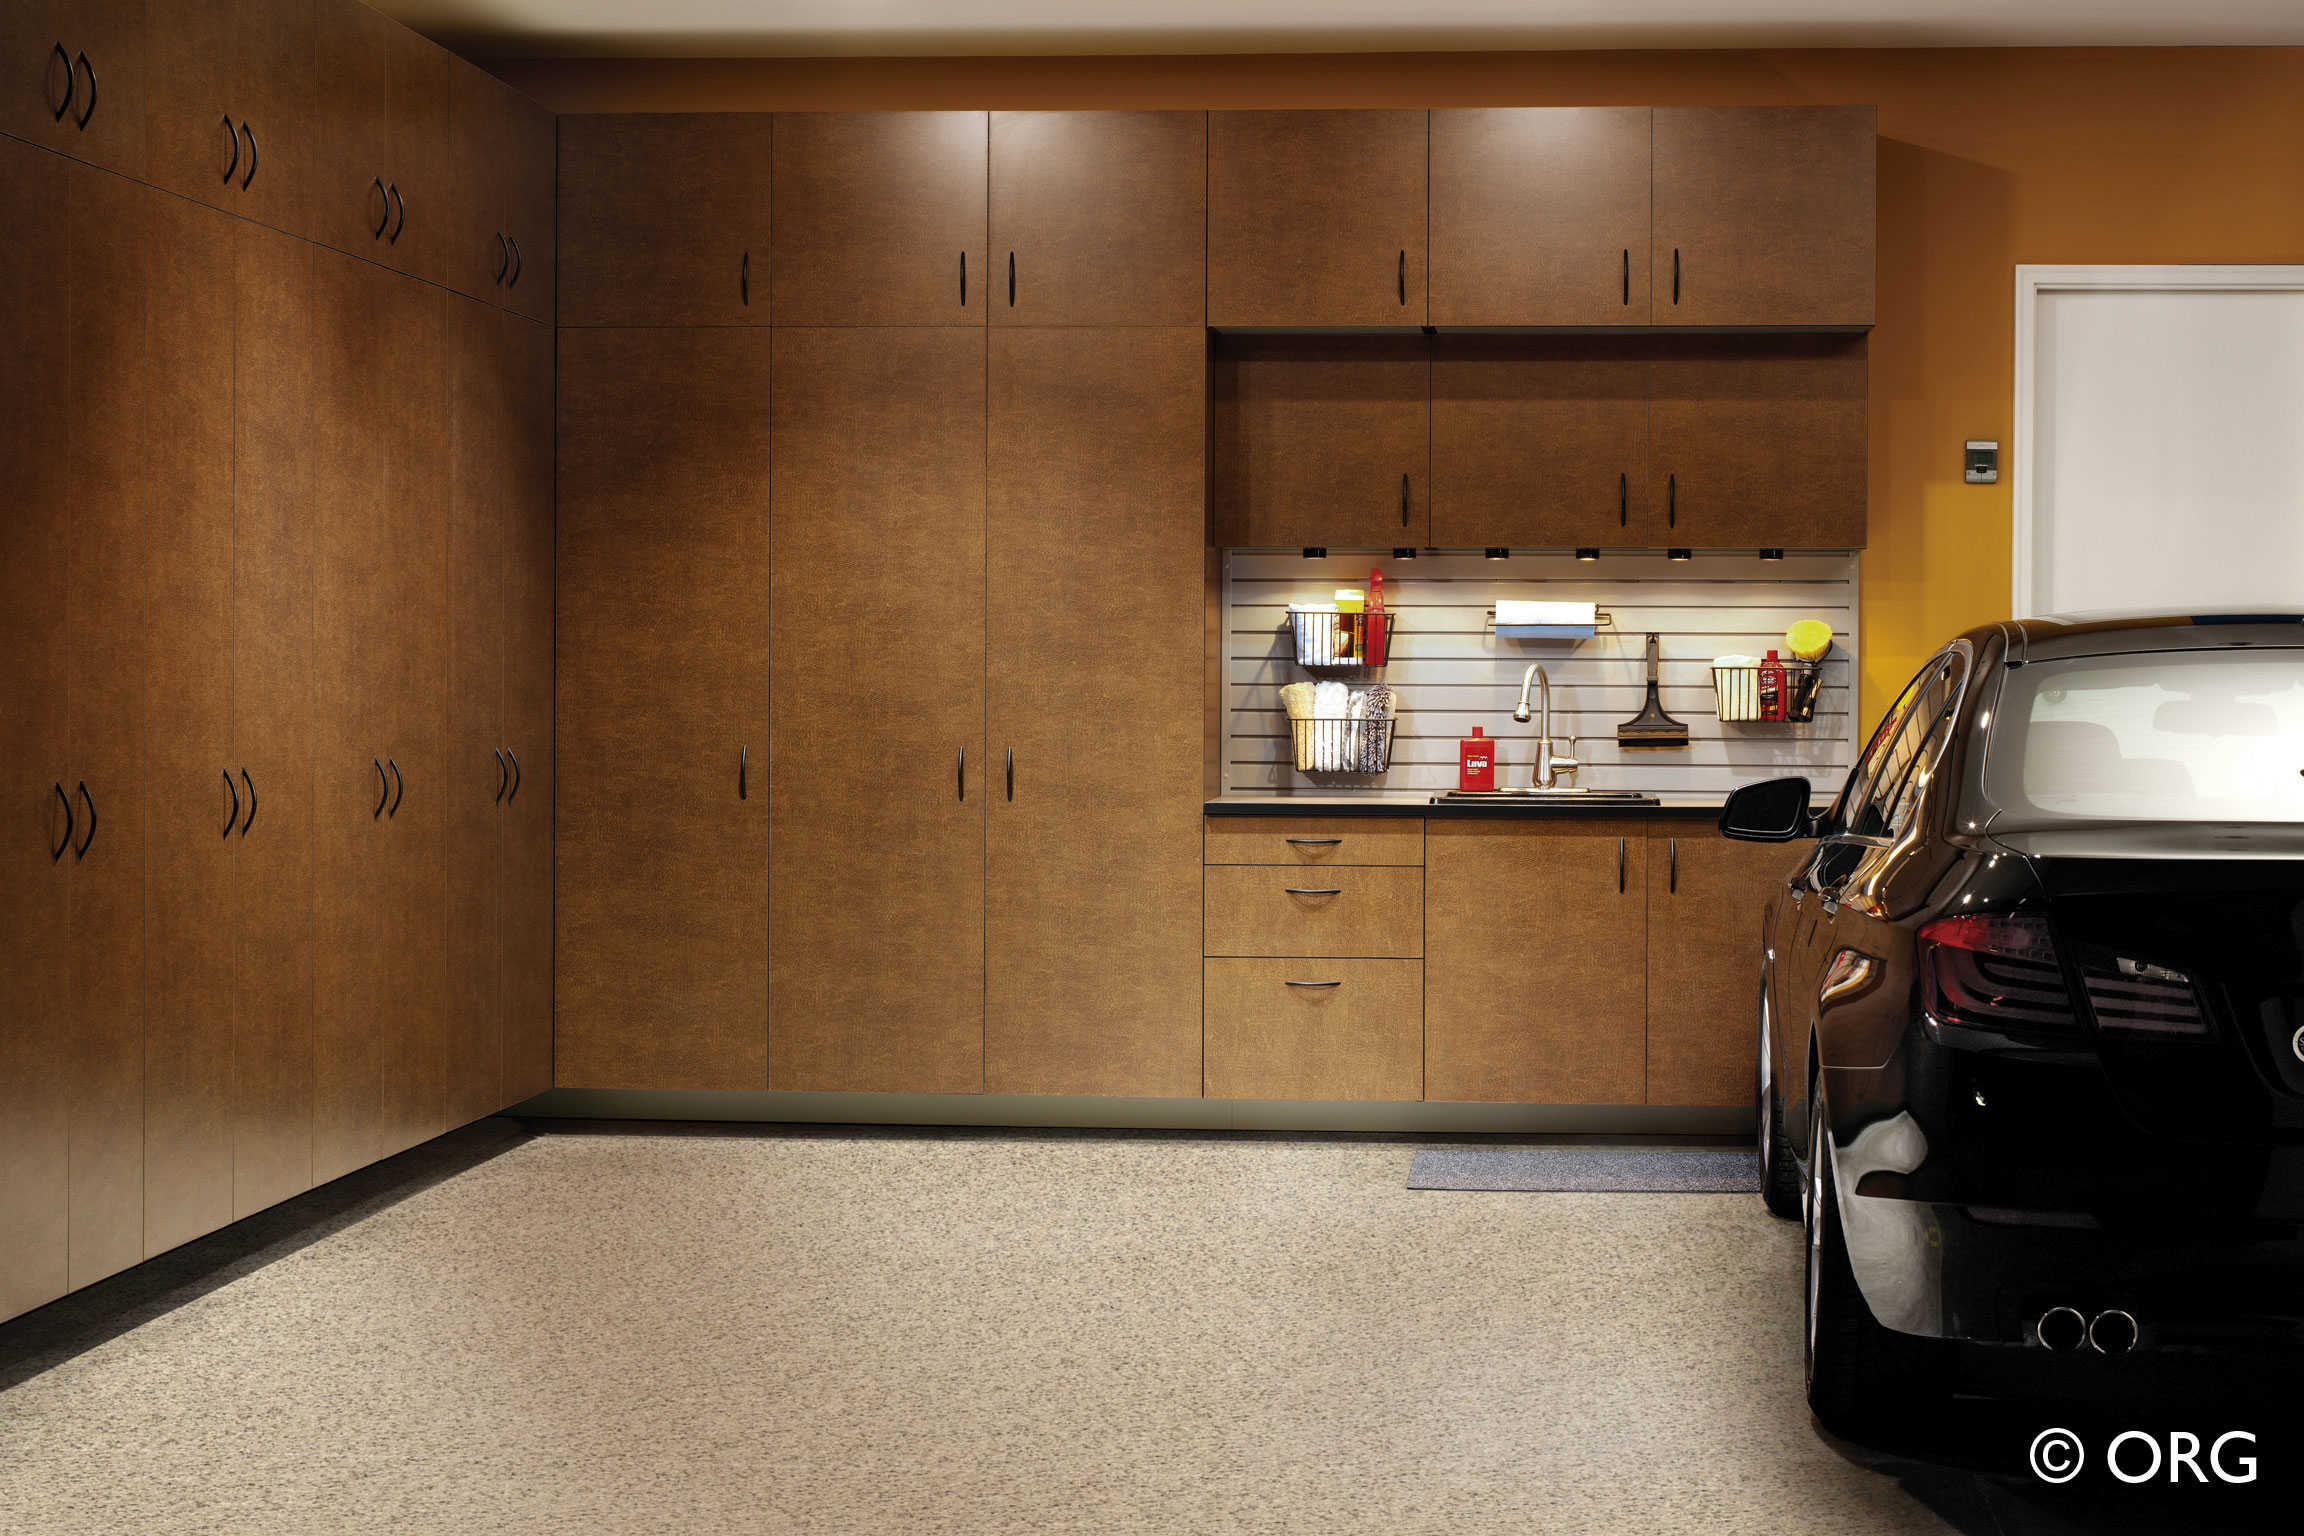 3 Garage Storage Systems To Reclaim Space Spacemakers